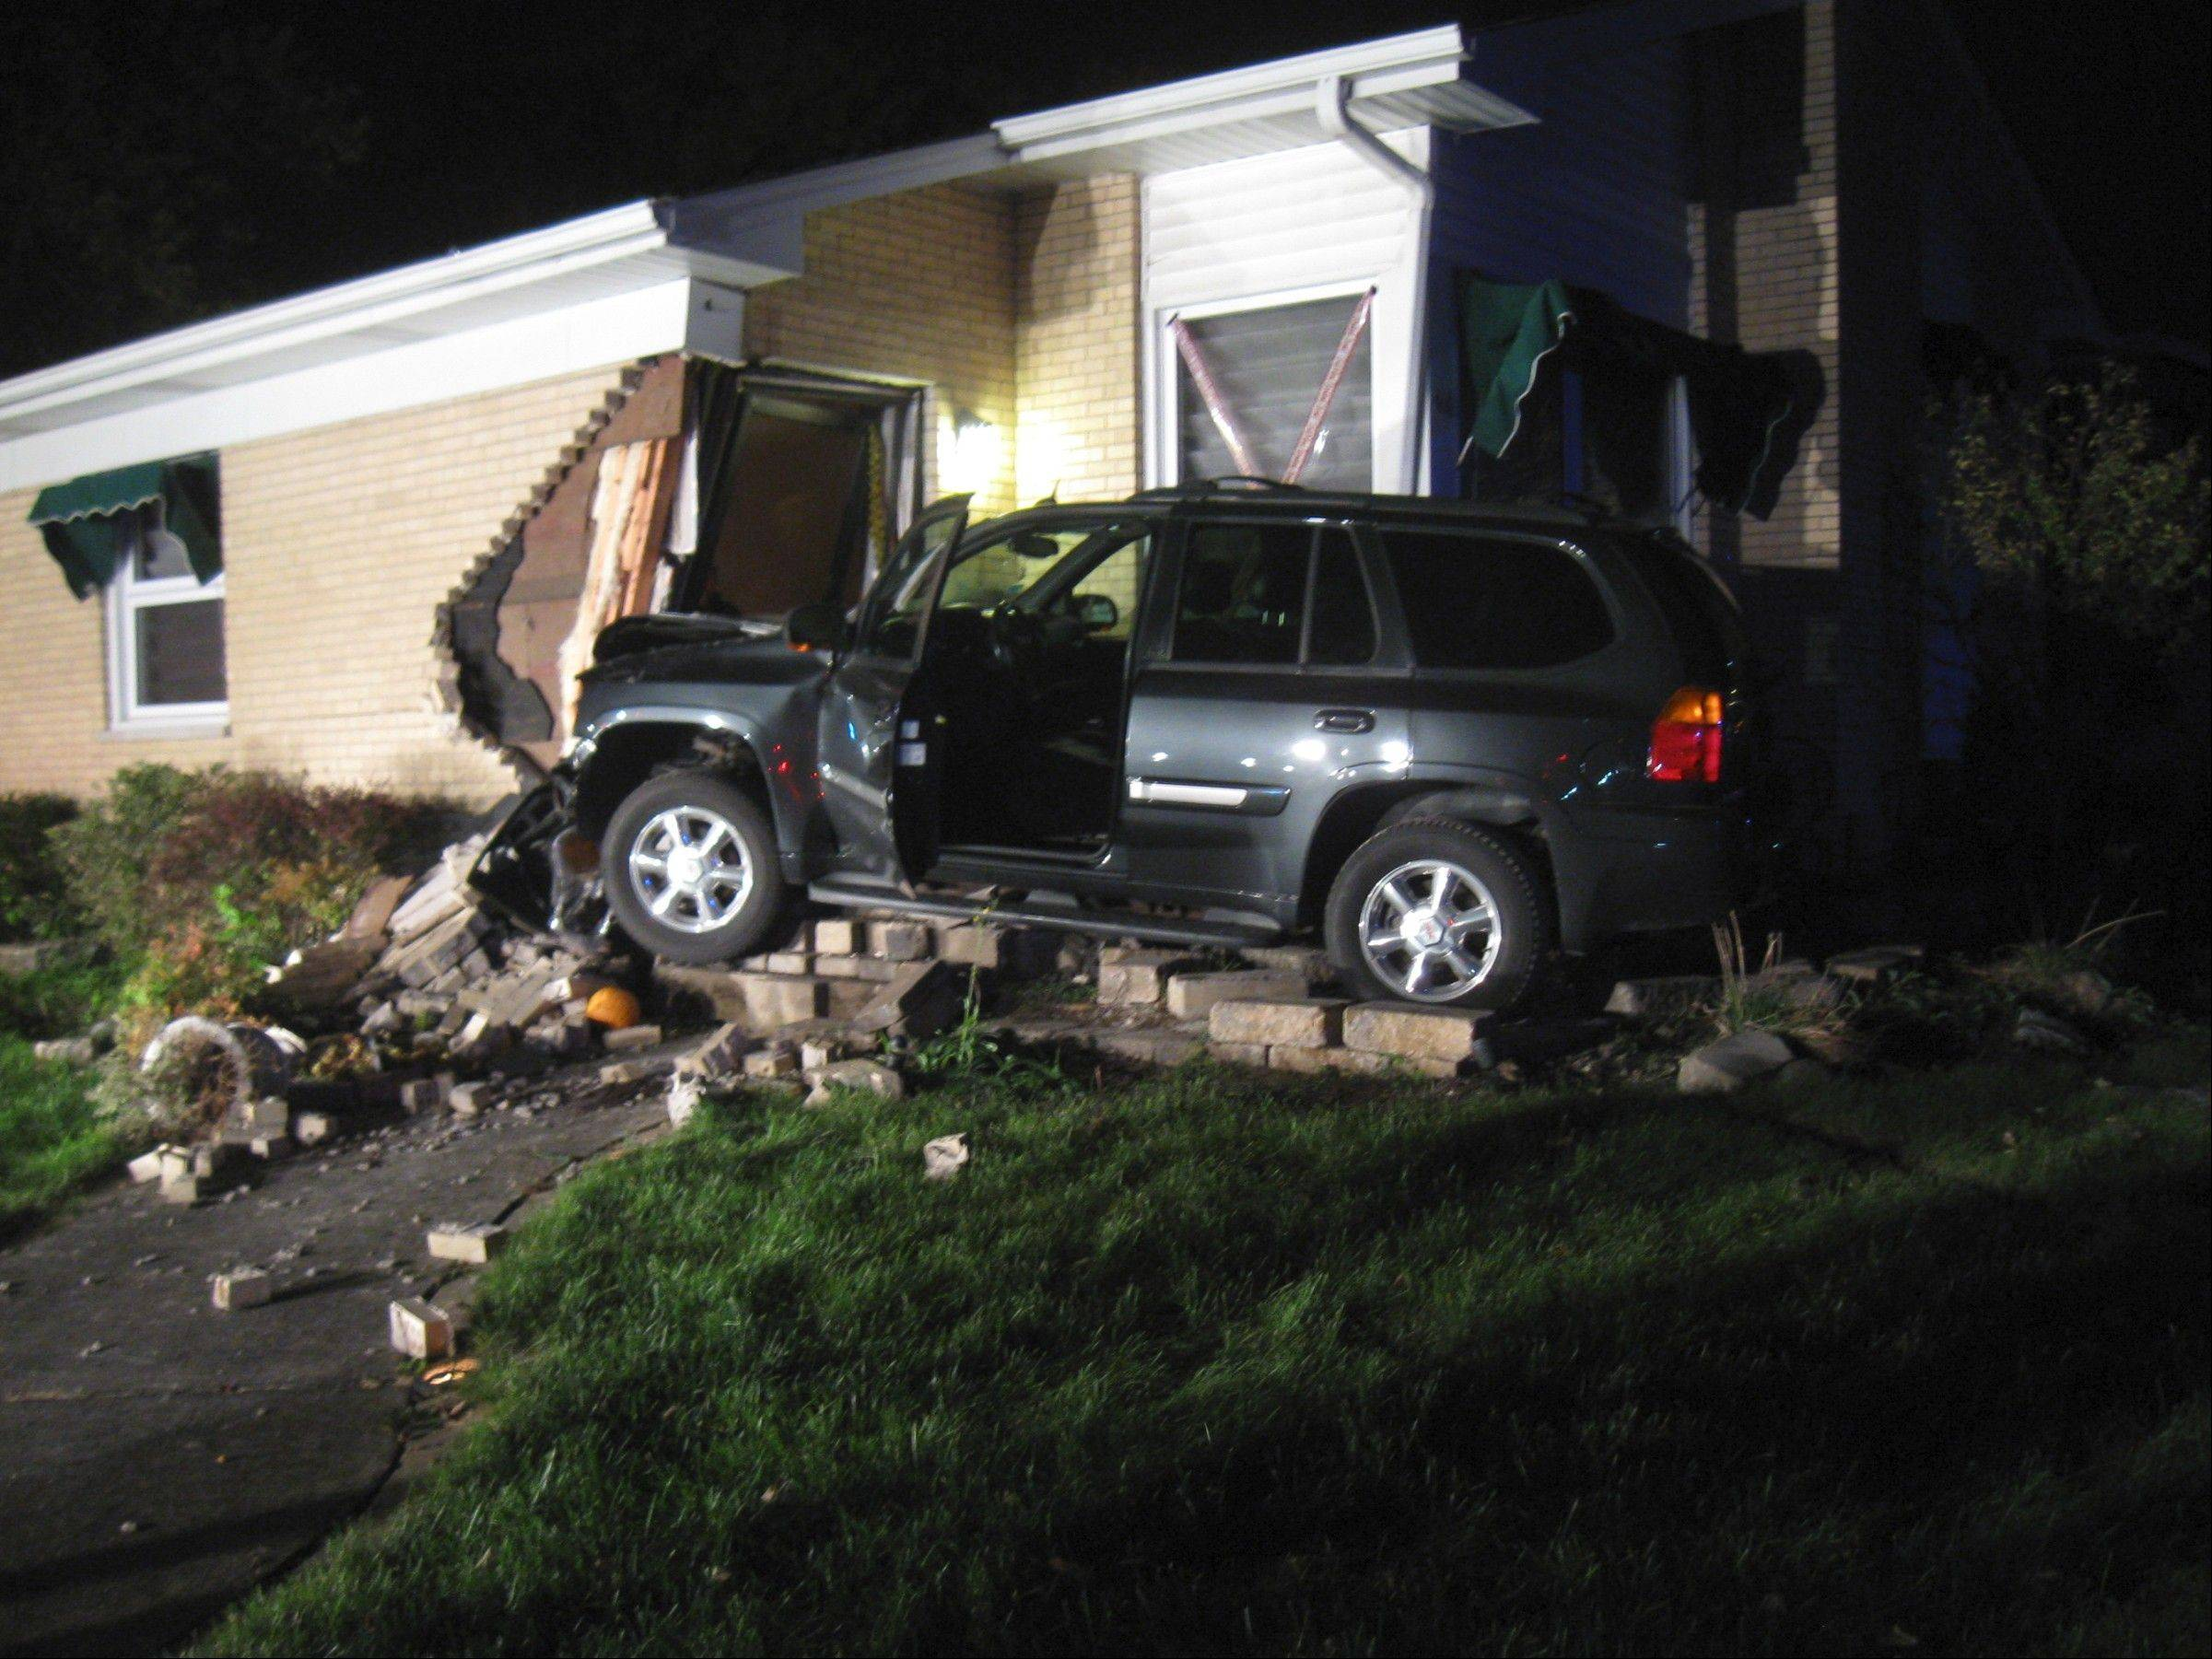 Two people were injured when a 17-year-old driver slammed her SUV into a Glen Ellyn home at the corner of Park Boulevard and Pershing Road Monday night, police said.